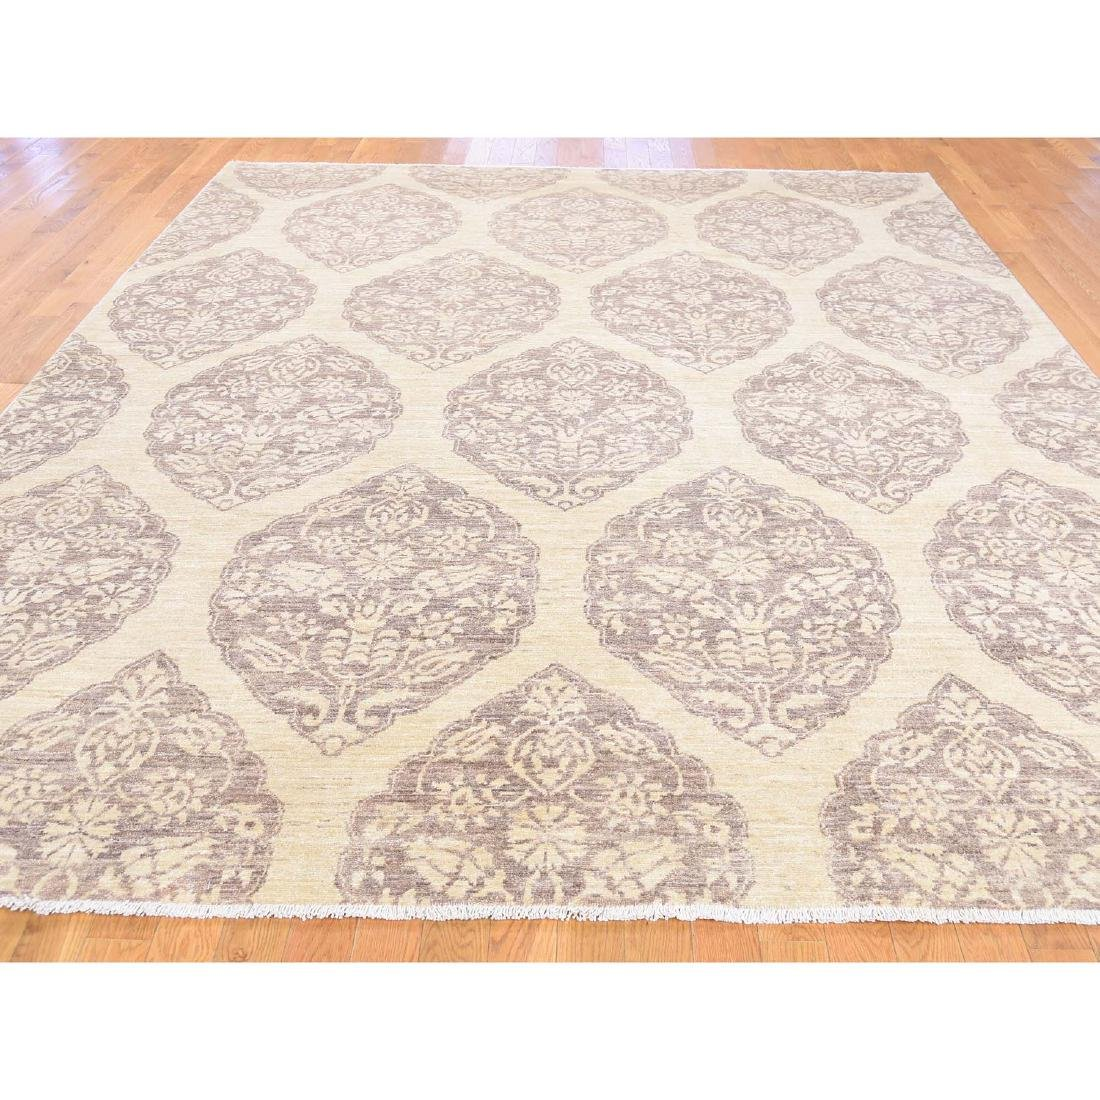 Pure Wool Peshawar with Mughal Design Hand Knotted Rug - 3